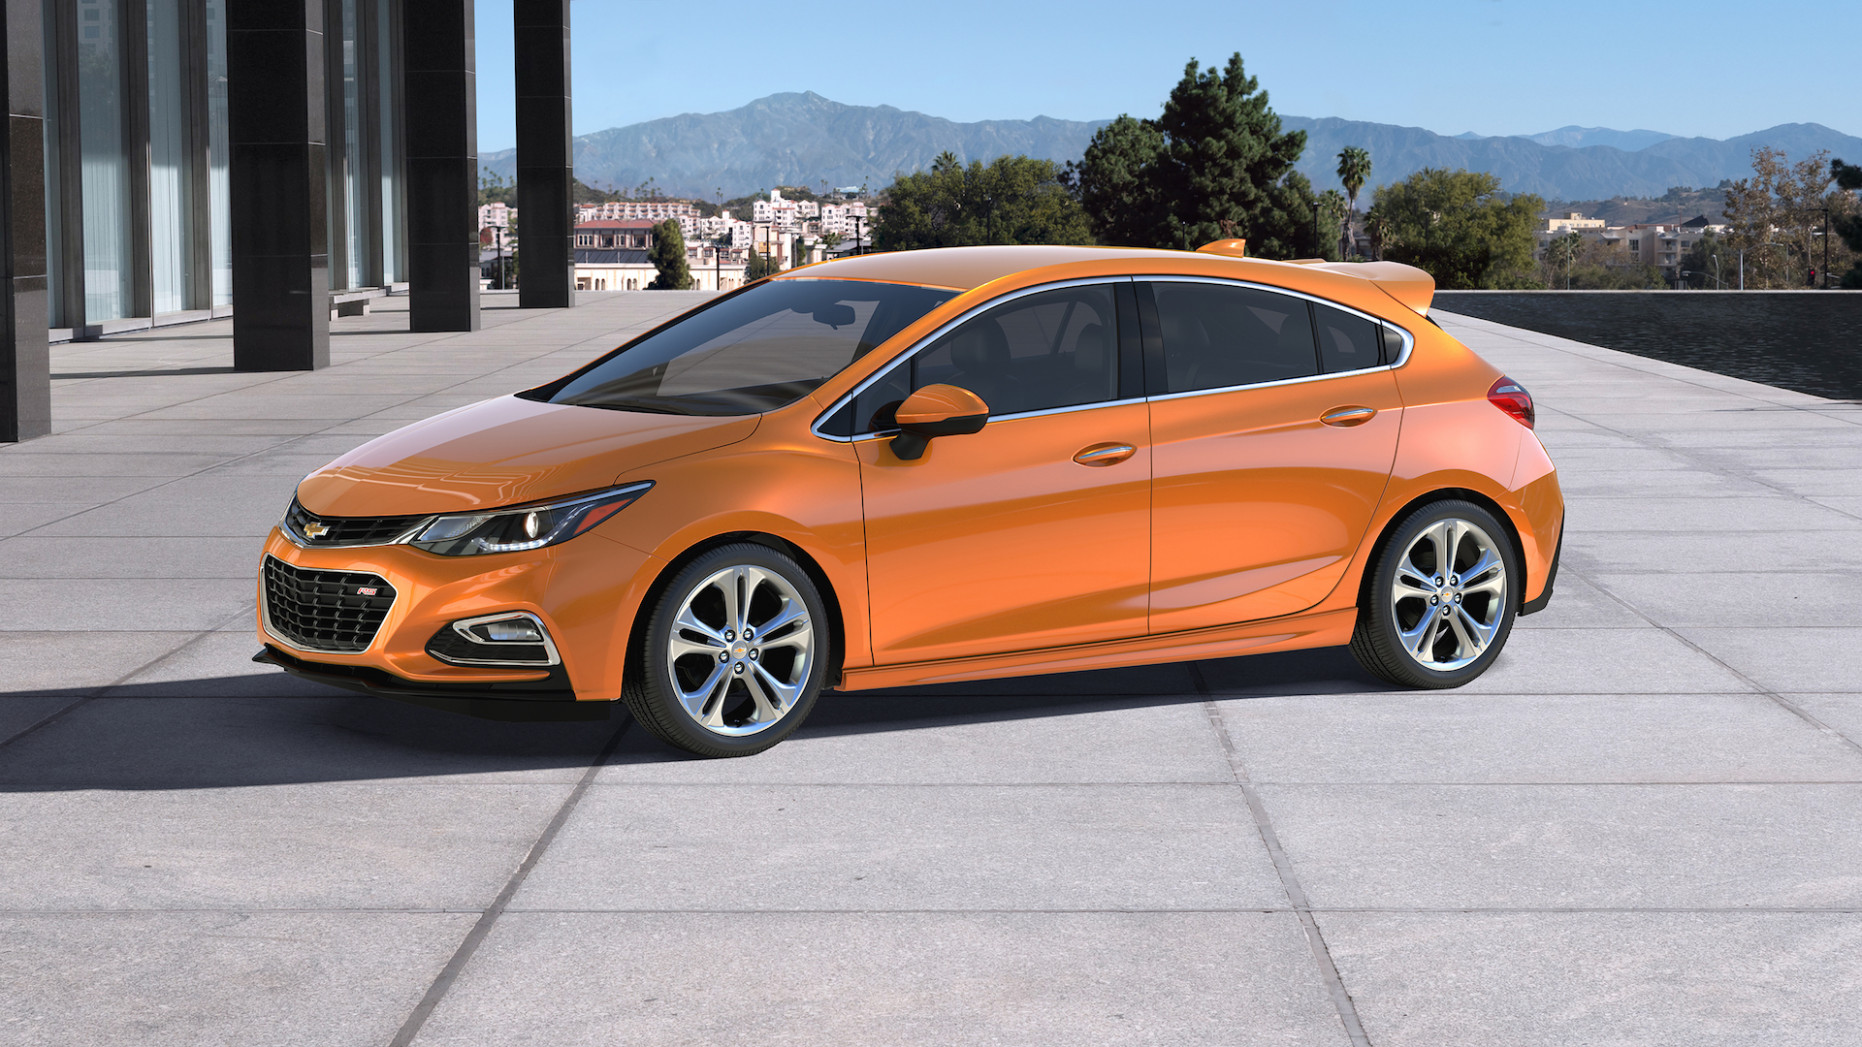 Performance and New Engine 2022 Chevy Cruze